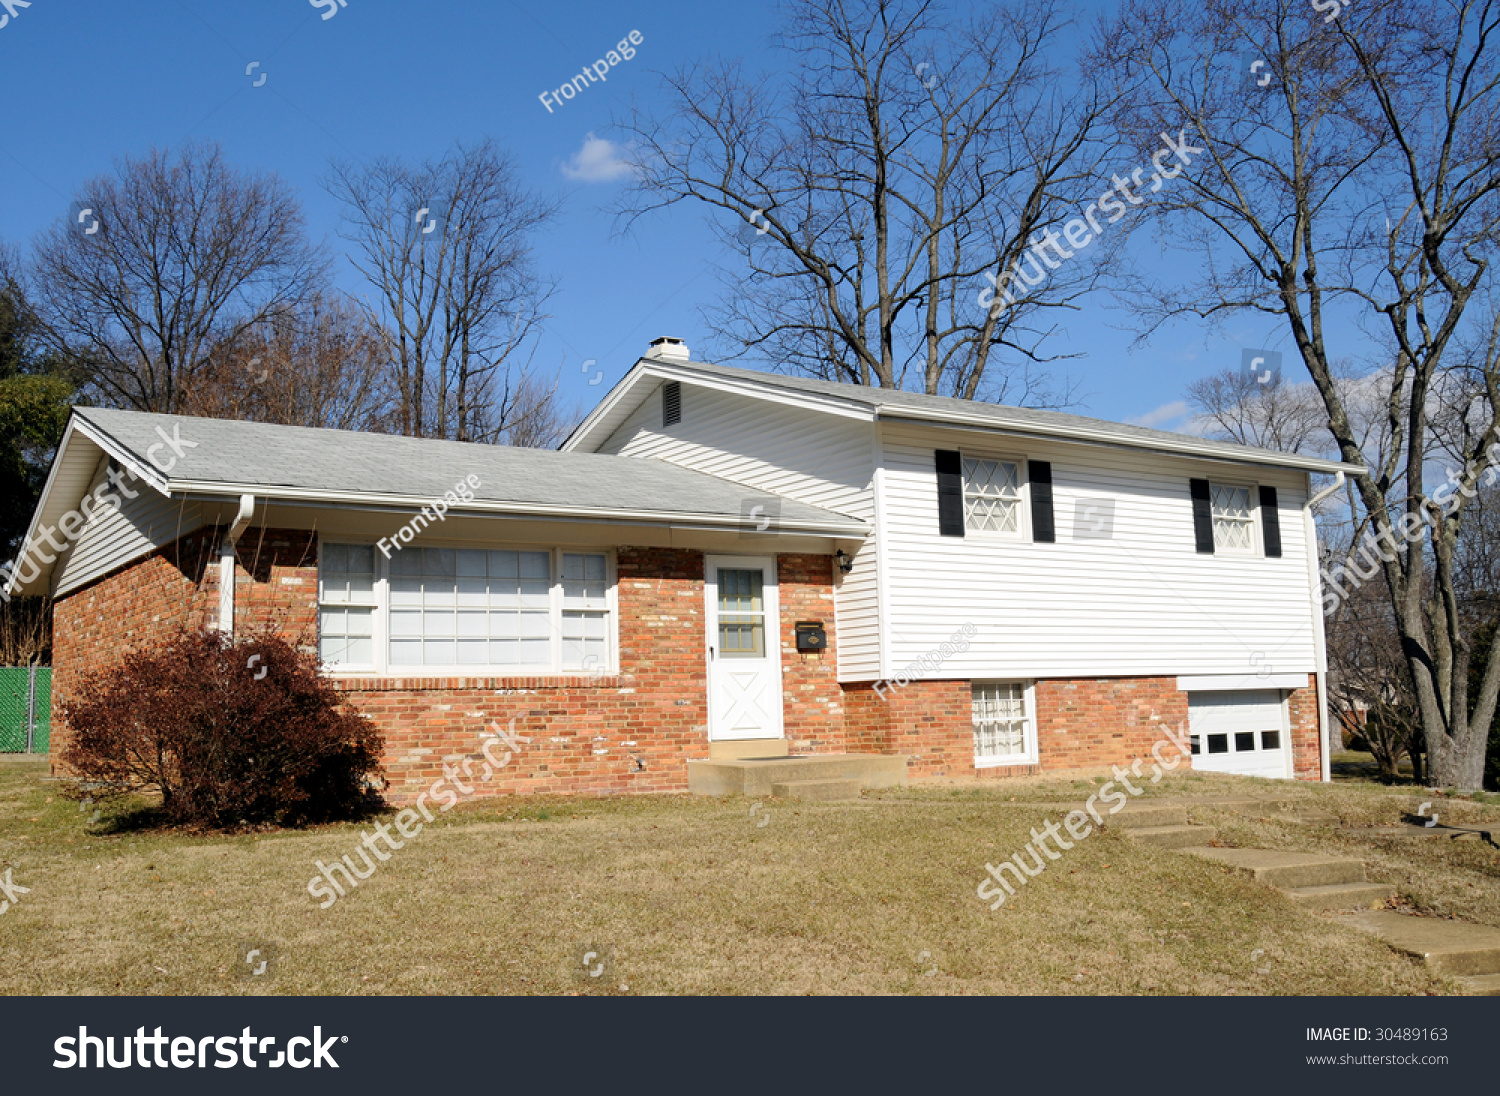 typical american split level home built in the 1960 s stock photo save to a lightbox